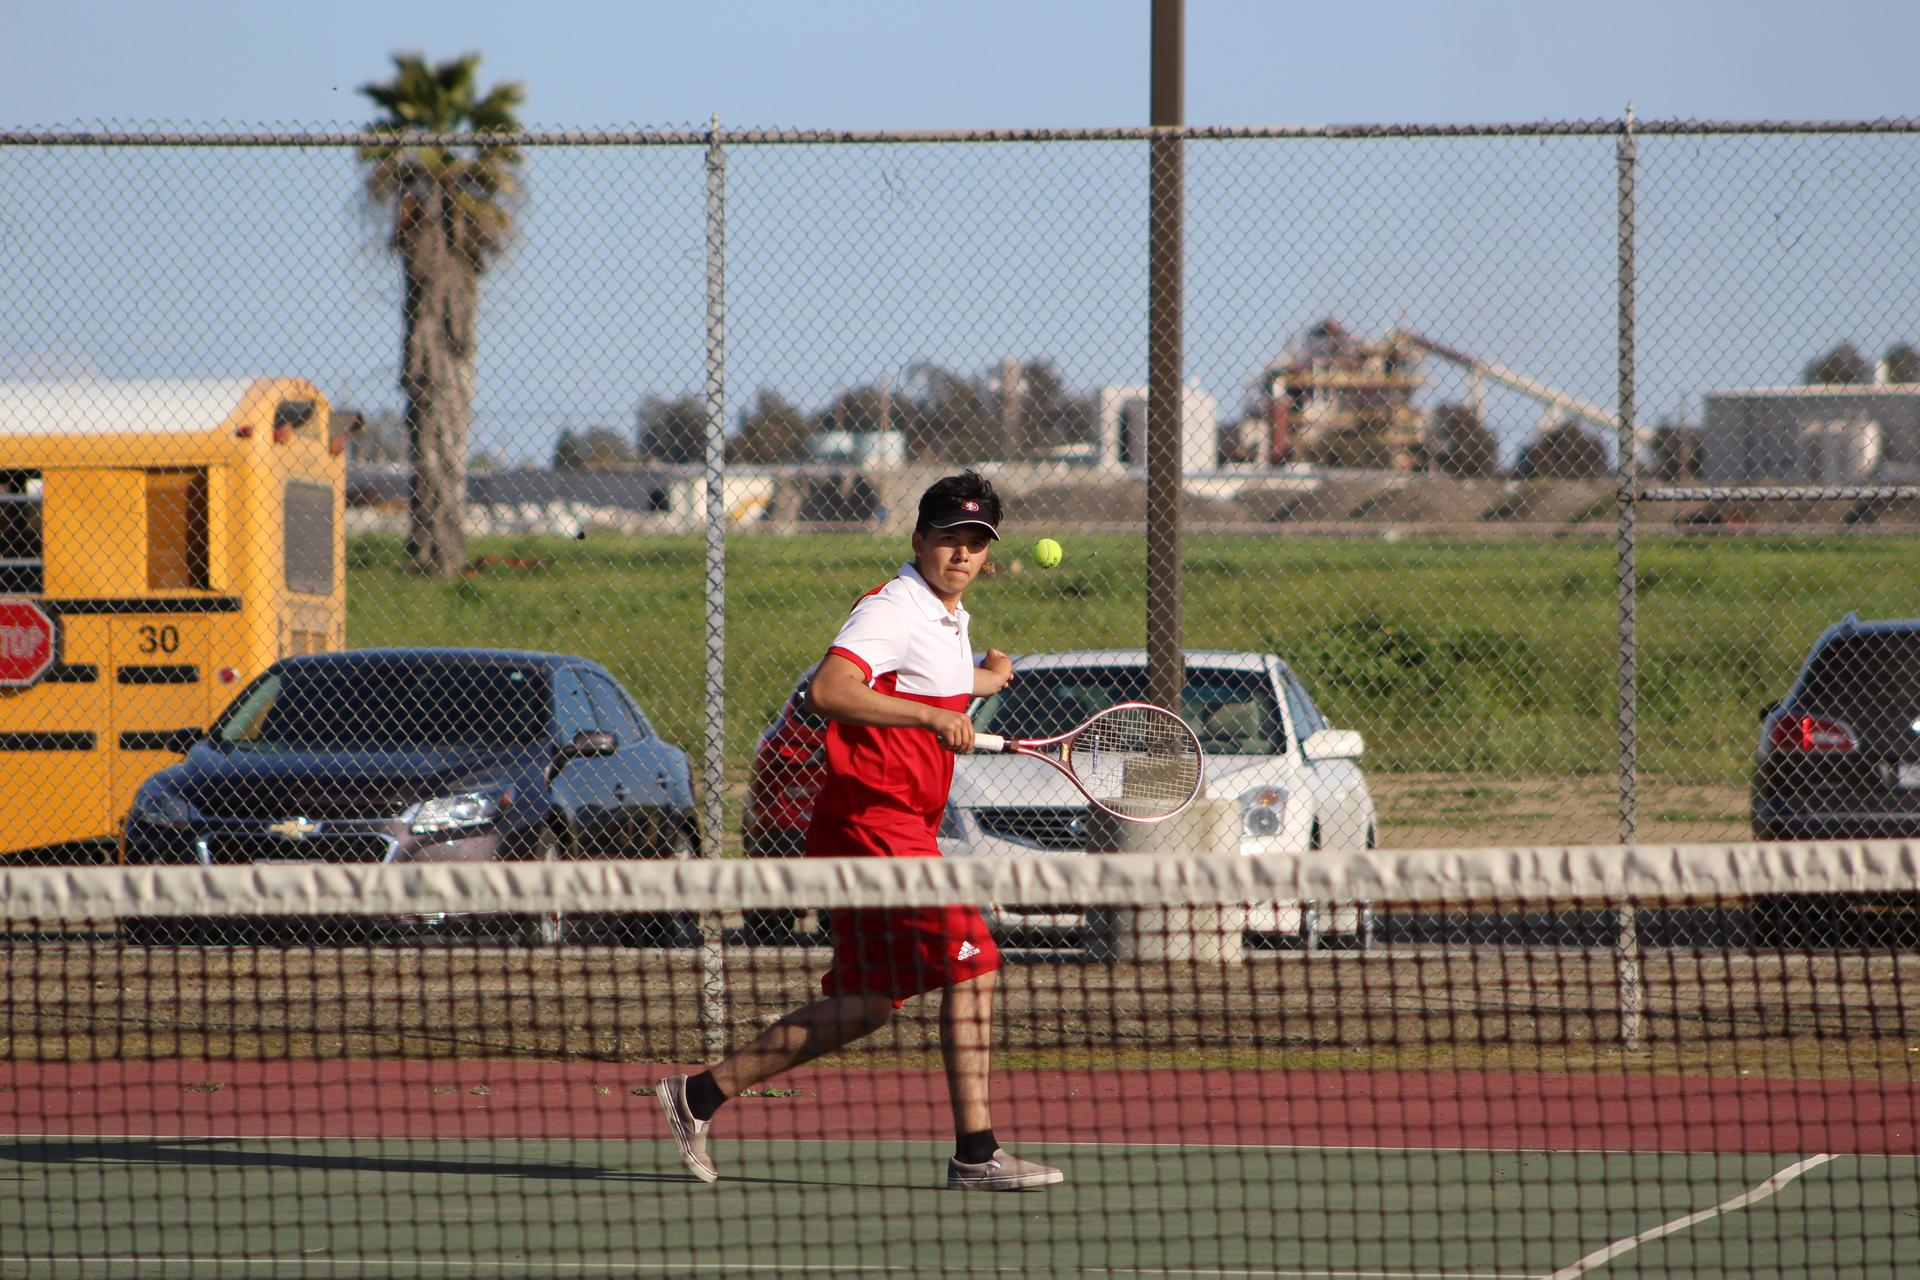 Boys playing tennis against Liberty